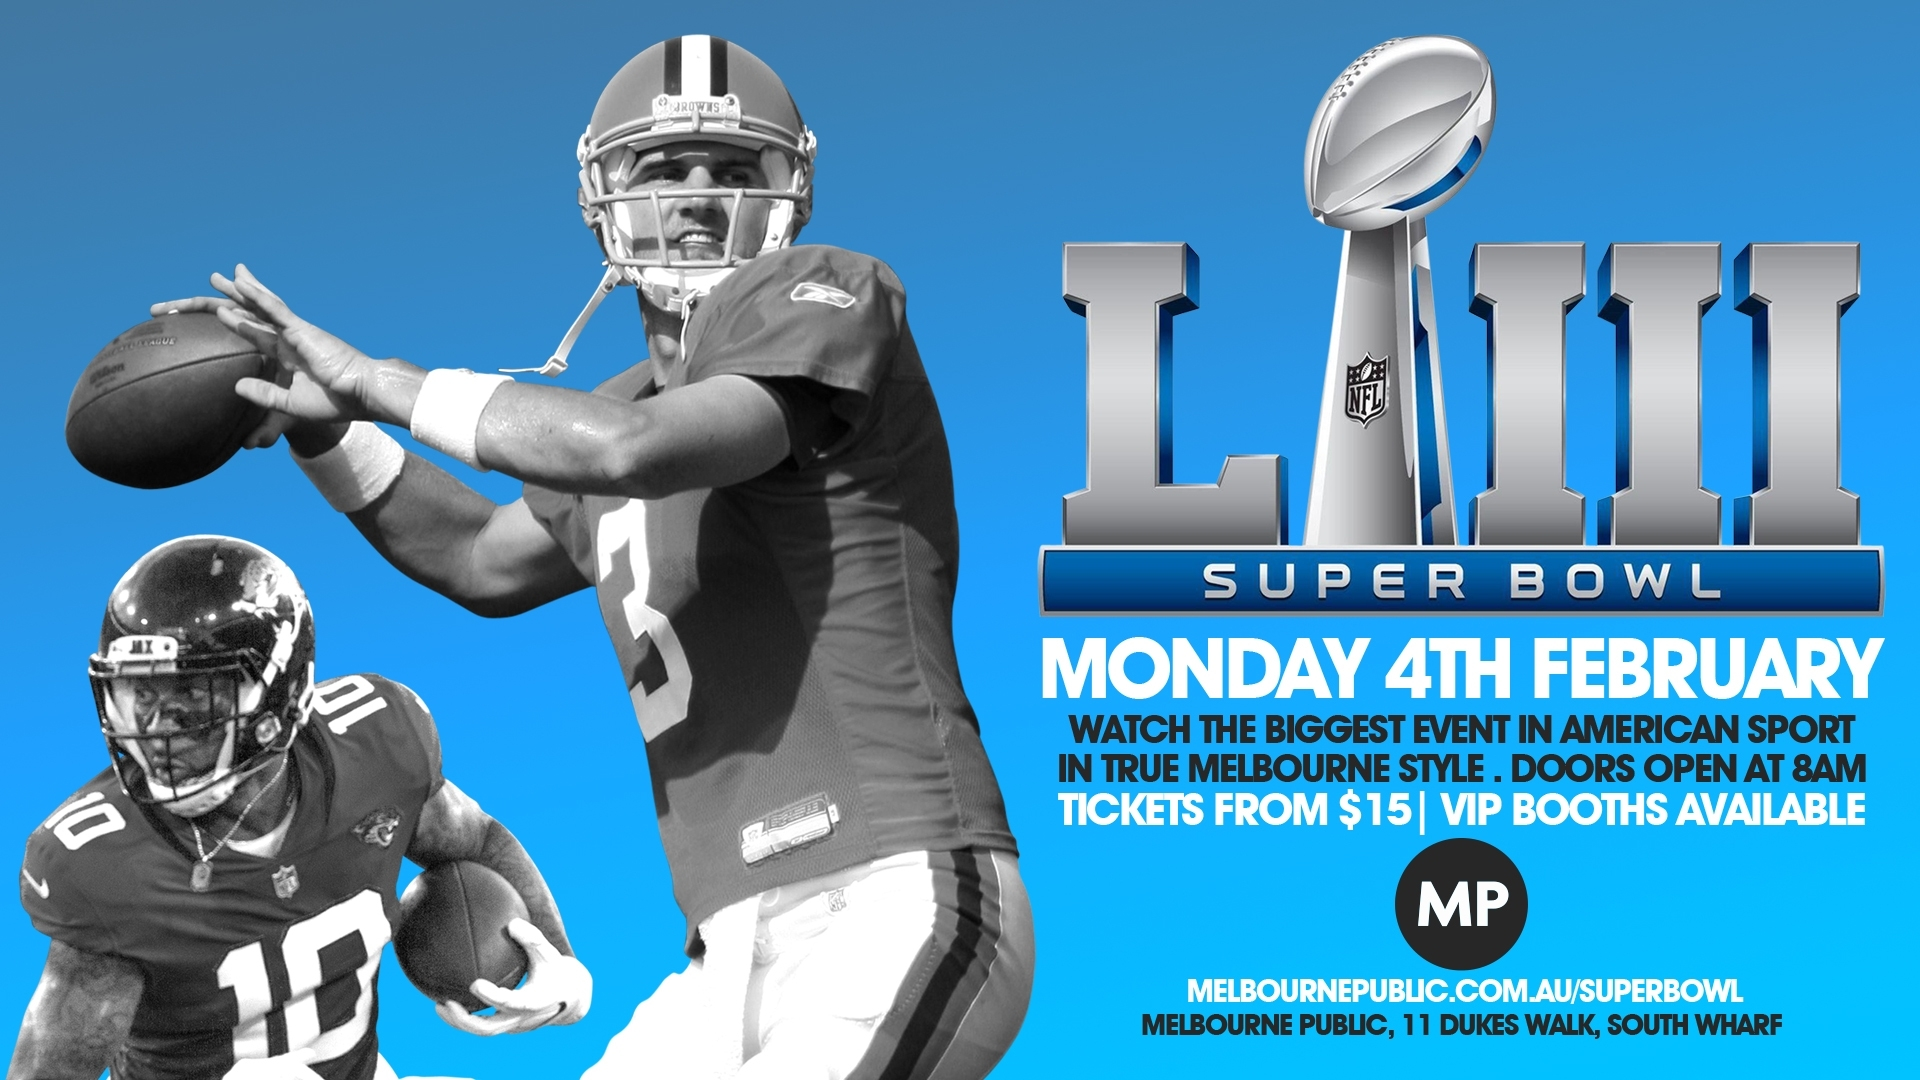 Tickets For Super Bowl 2019 In South Wharf From Ticketbooth with Super Bowl 2019 Tickets